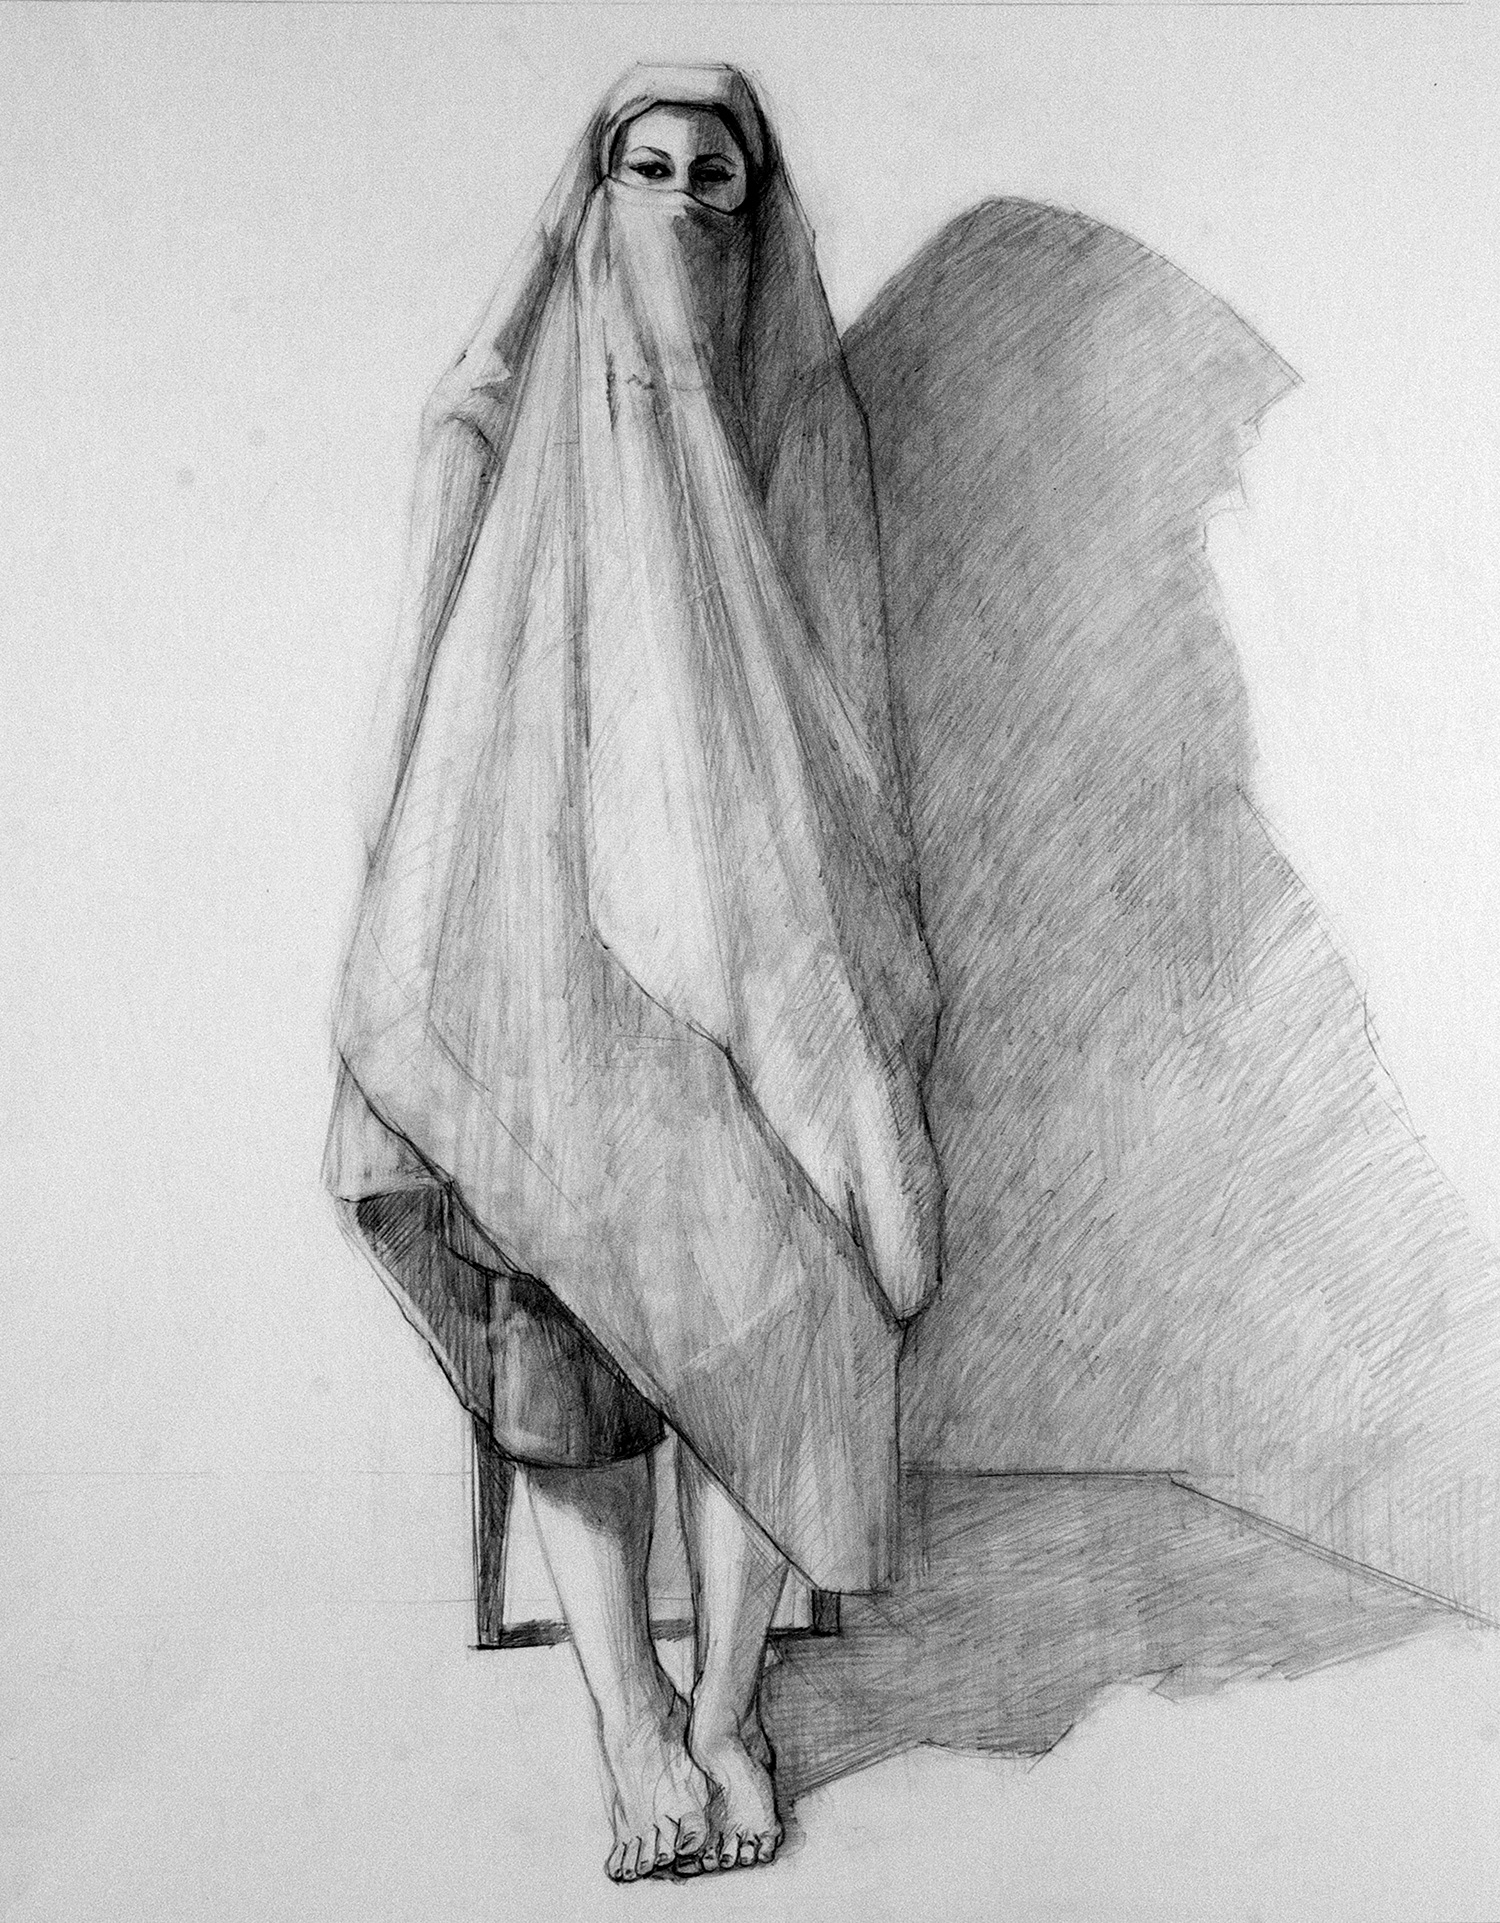 Veiled , 2015. Graphite on paper, 24 x 19 in.